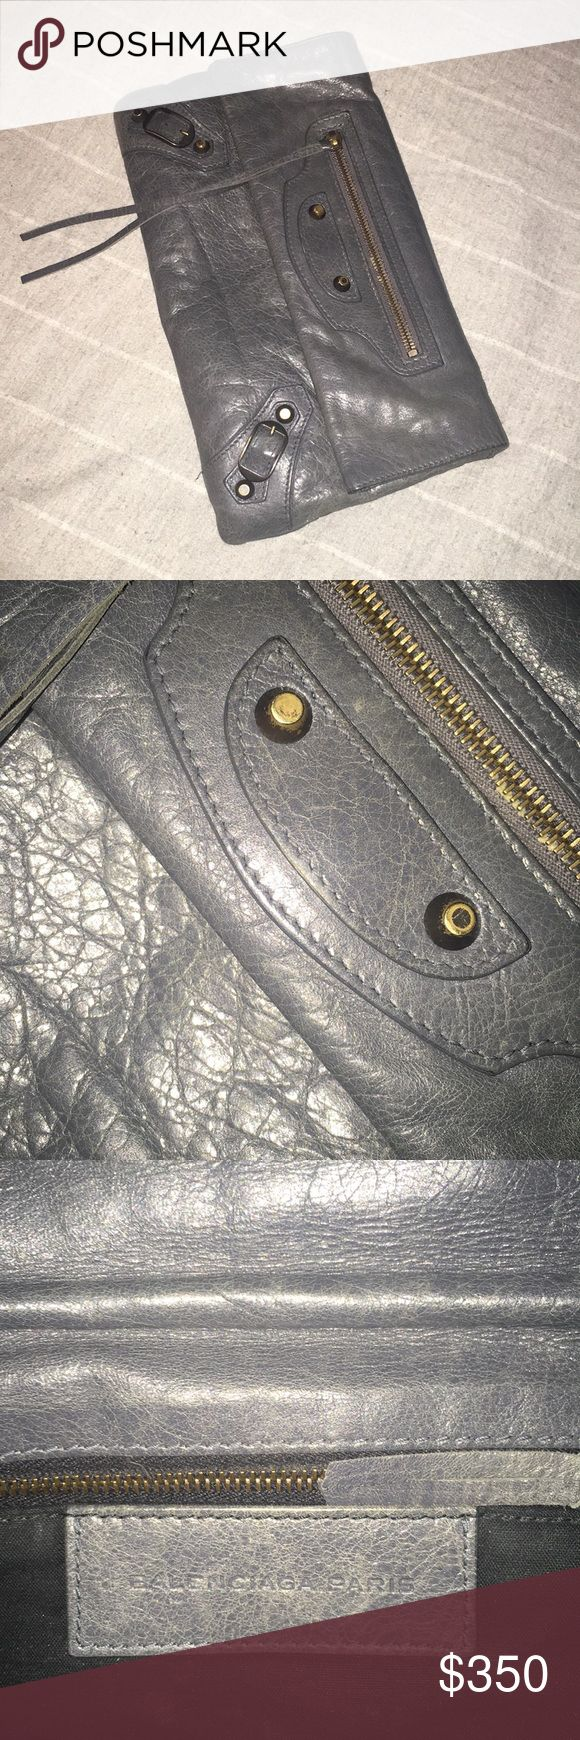 Balenciaga Clutch Dark grey, super soft clutch. Love but not as daily use and not worth keeping in the closet! Bought off tradesy awhile back (listing original price for what I bought it for) Balenciaga Bags Clutches & Wristlets